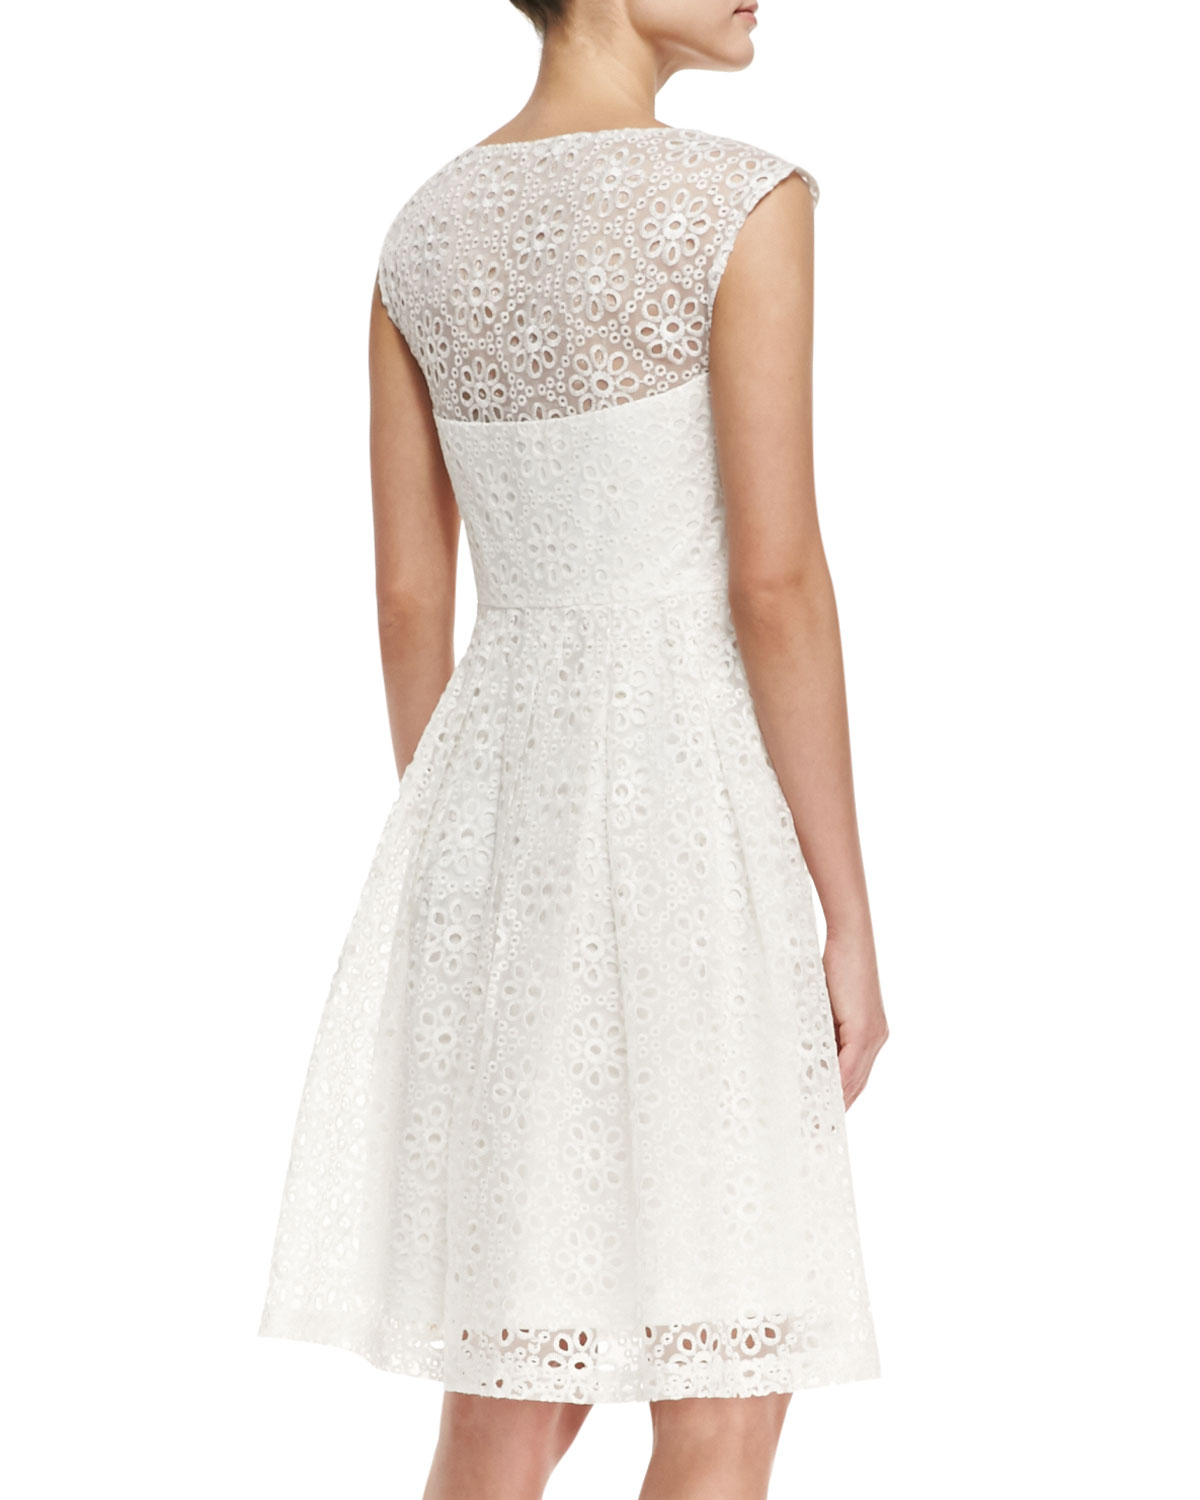 Lyst - Sue Wong Cap-sleeve Eyelet Fit-and-flare Cocktail Dress in White